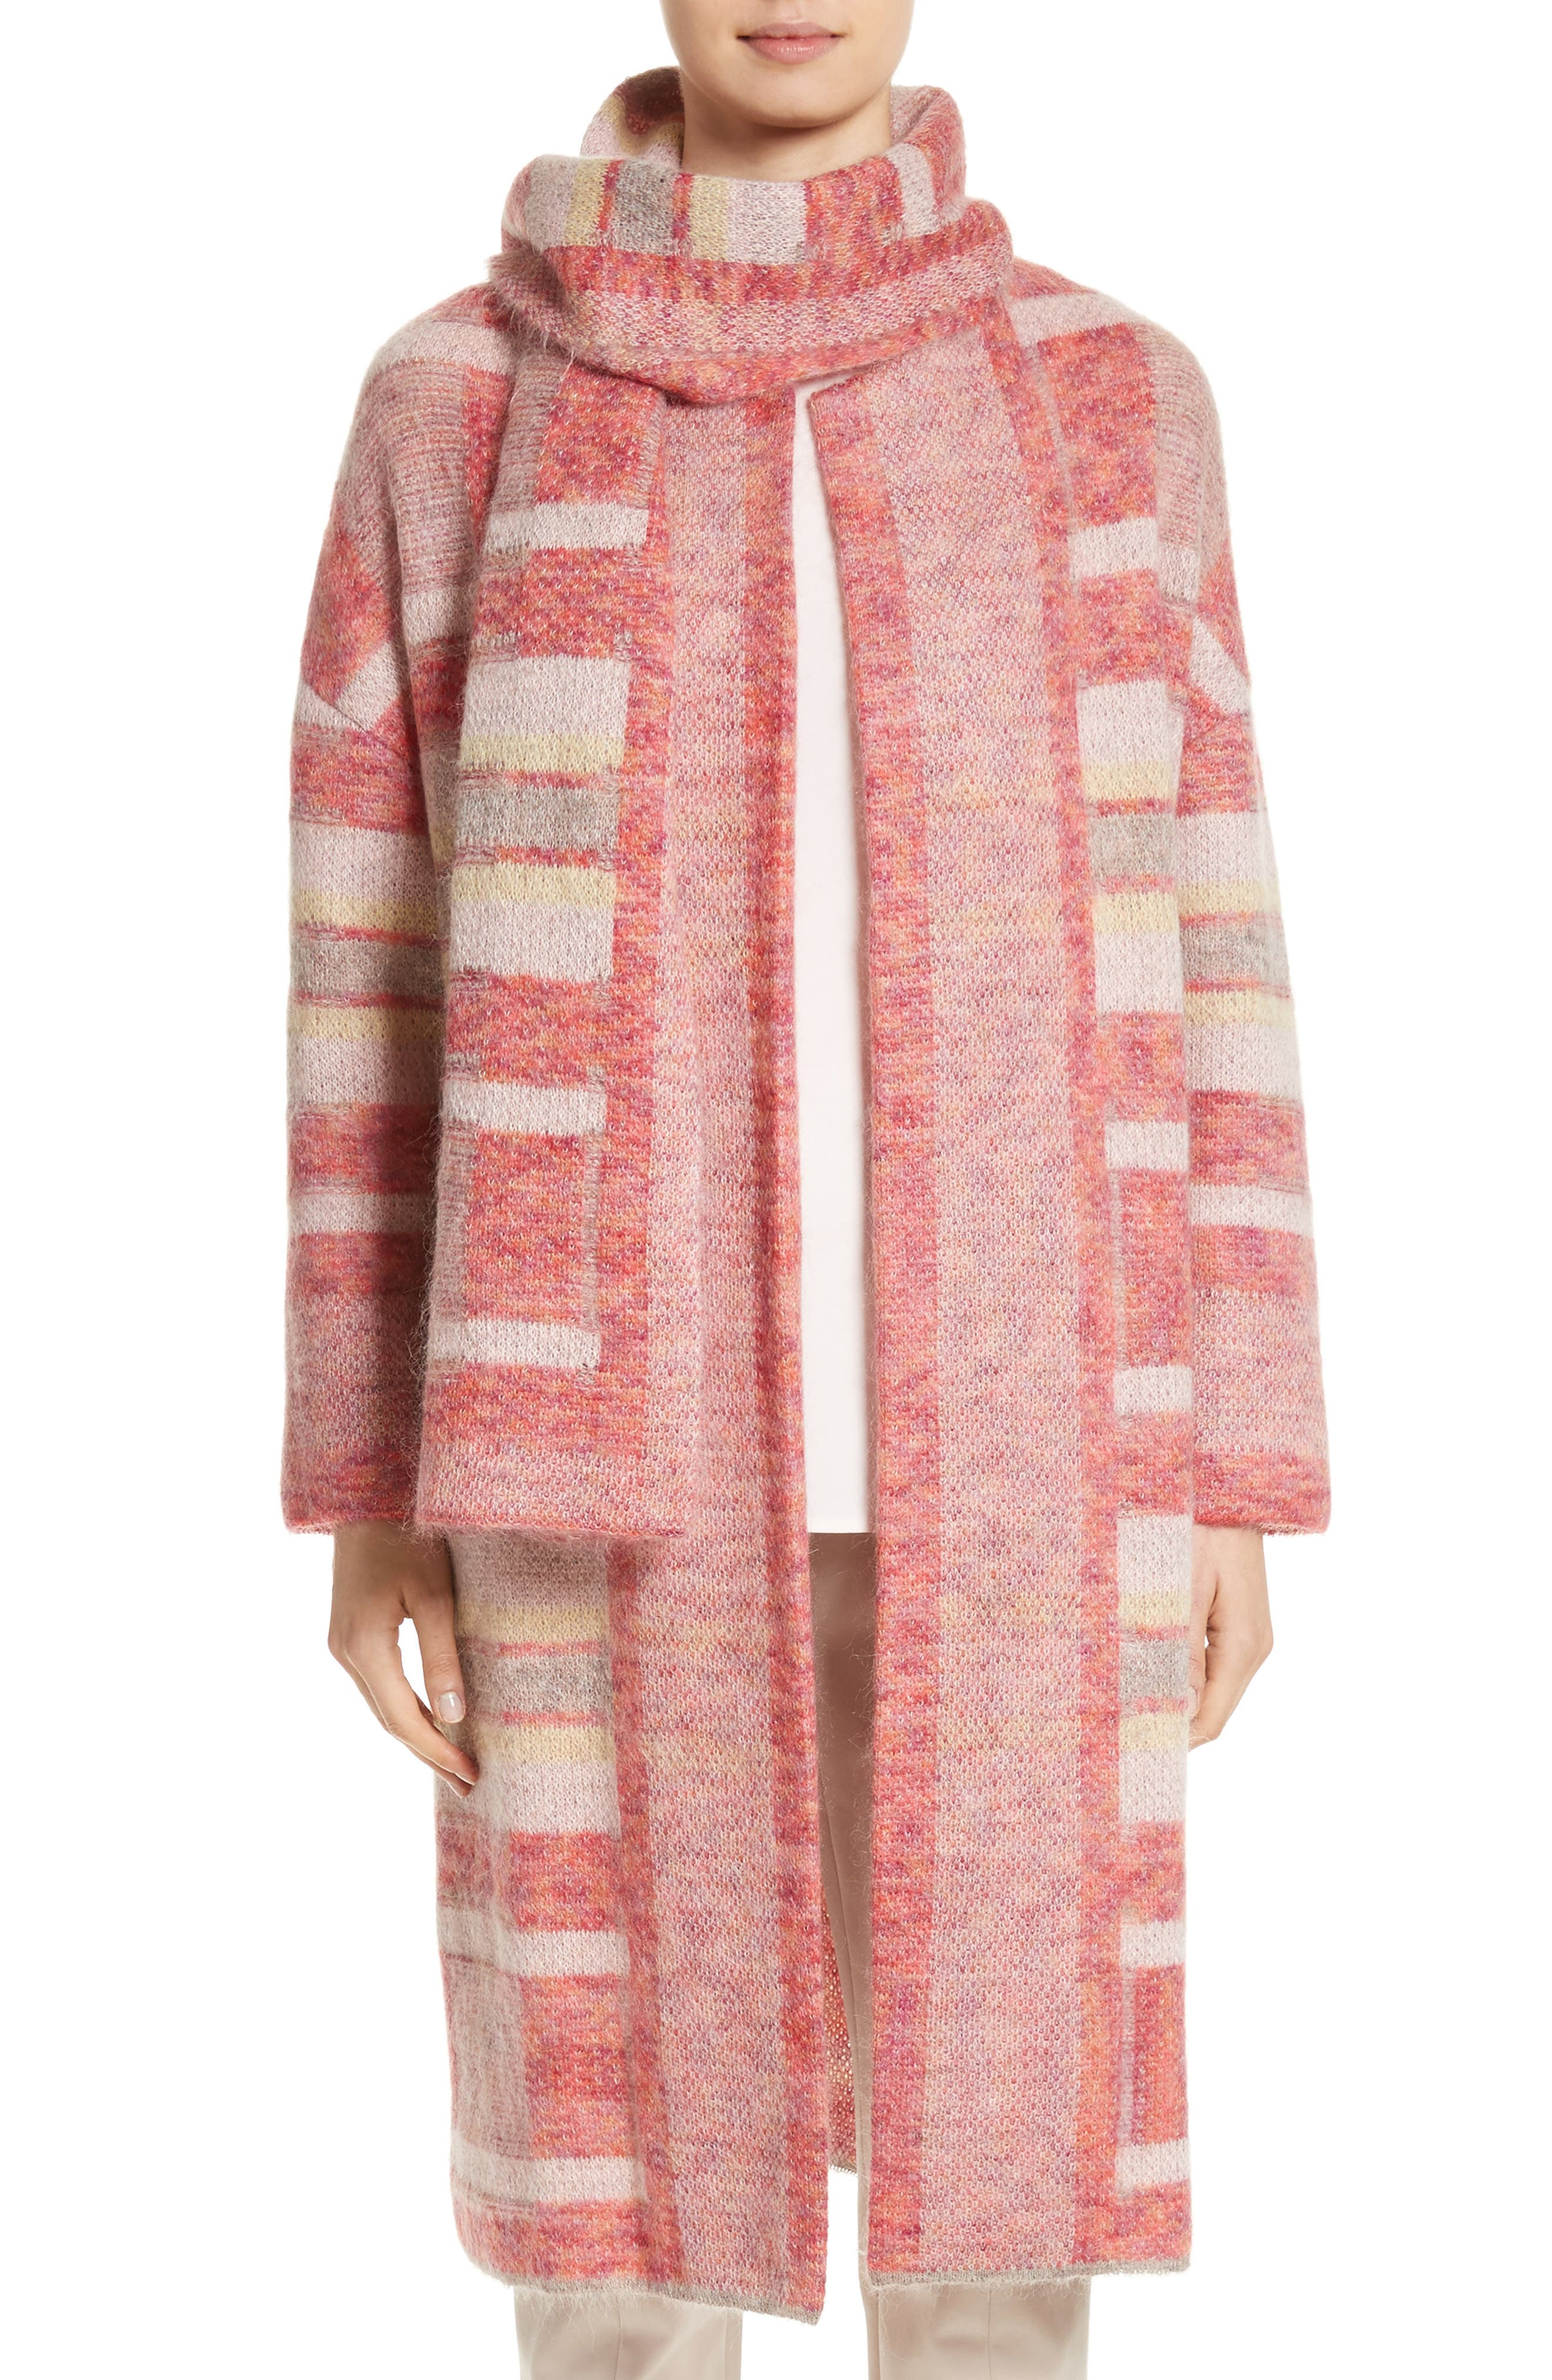 Lofty Knit Plaid Blanket Coat,                             Main thumbnail 1, color,                             Bright Coral Multi